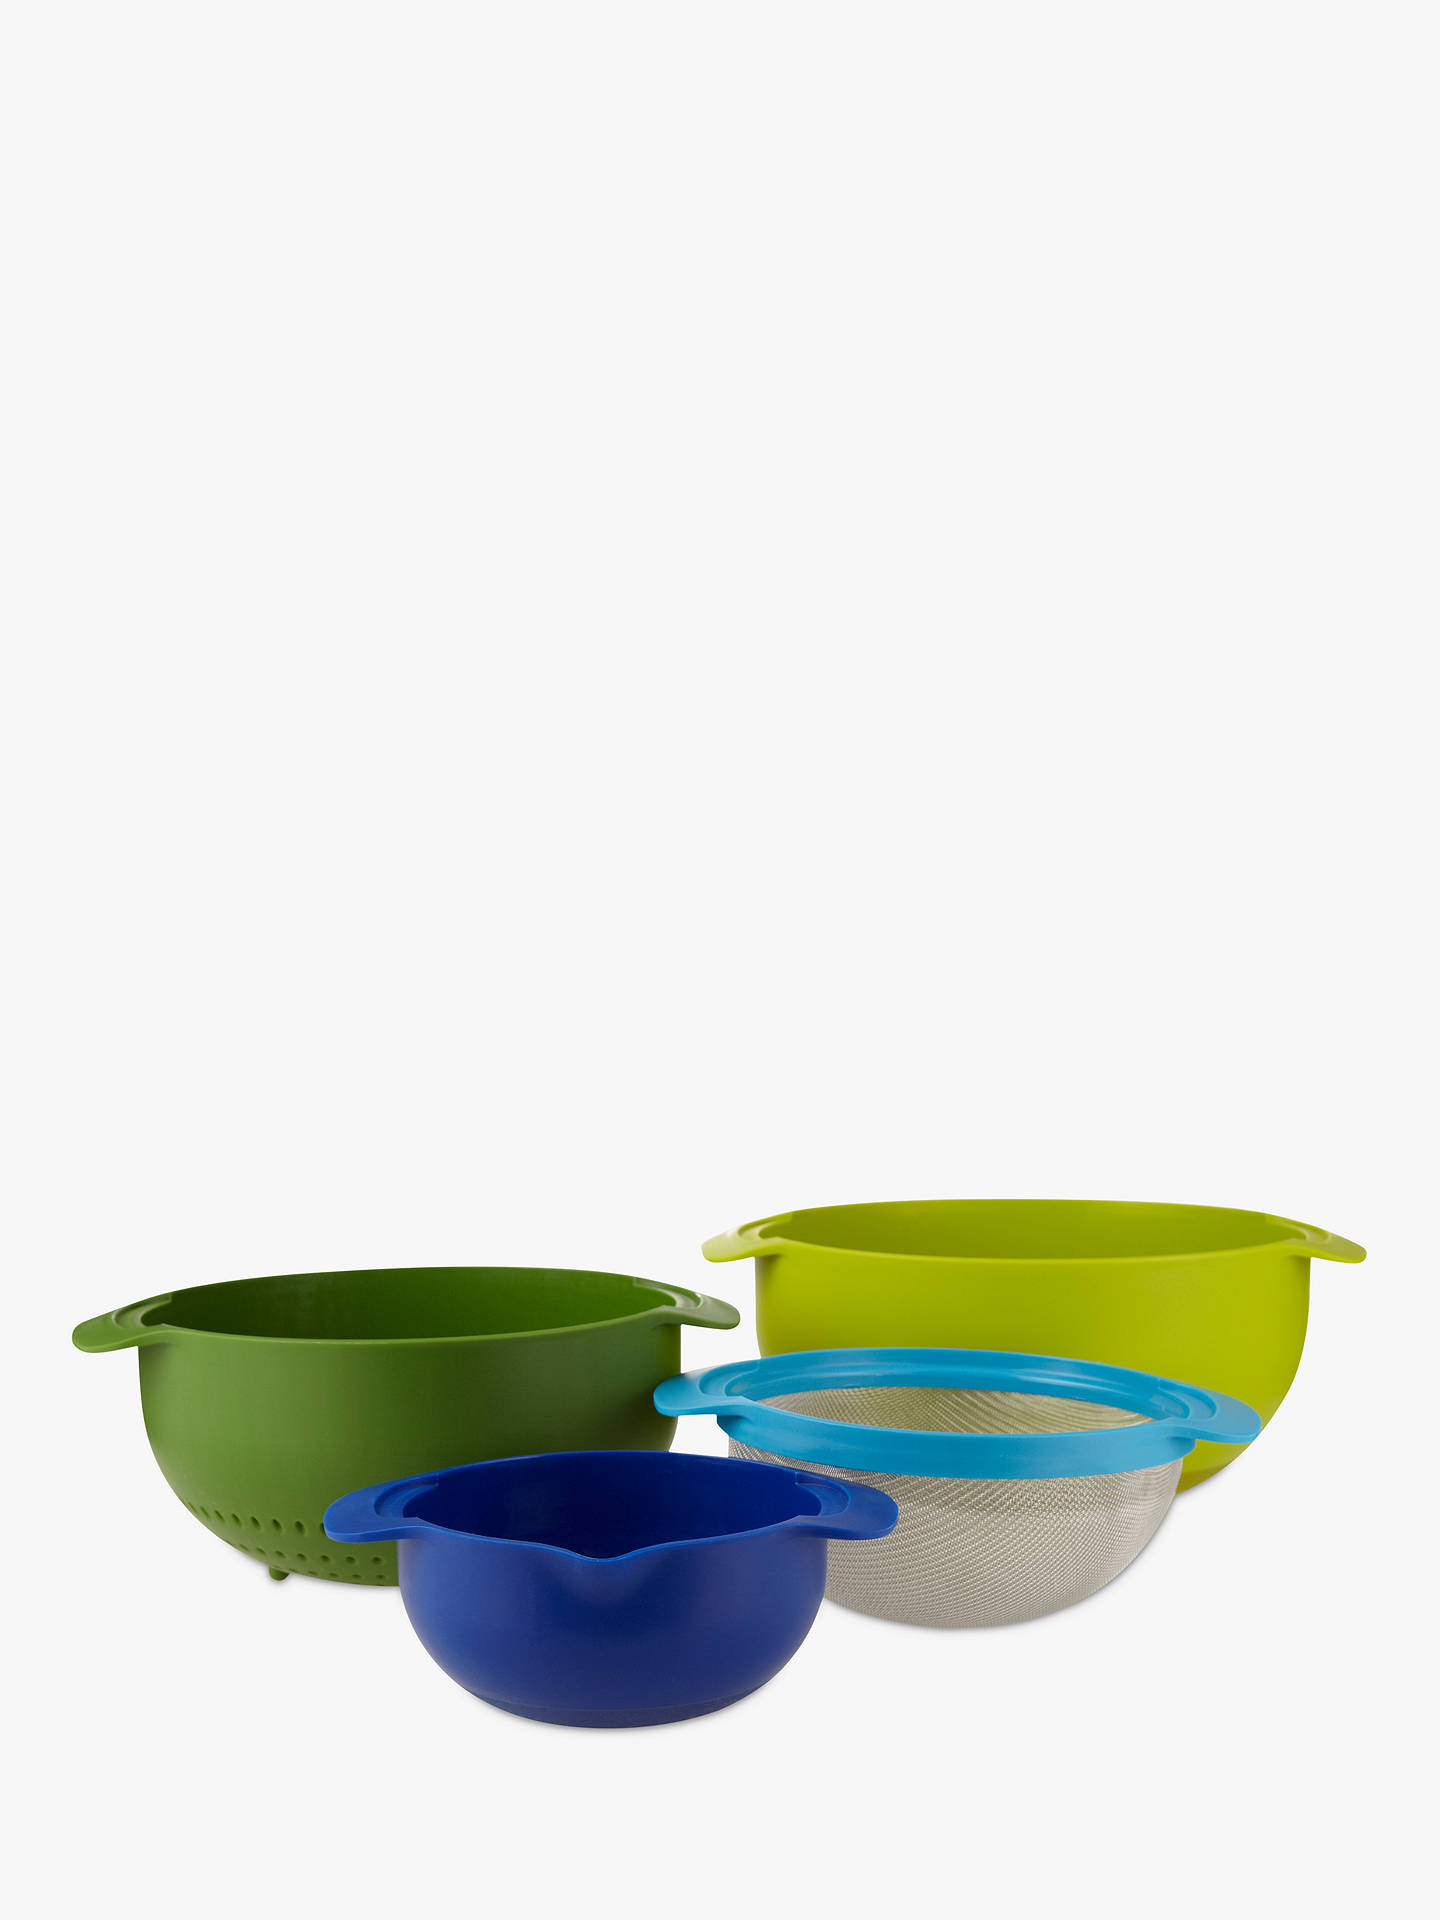 Buy Joseph Joseph Nest Plus 9 Mixing Bowls and Measuring Cups Set, Multi Online at johnlewis.com